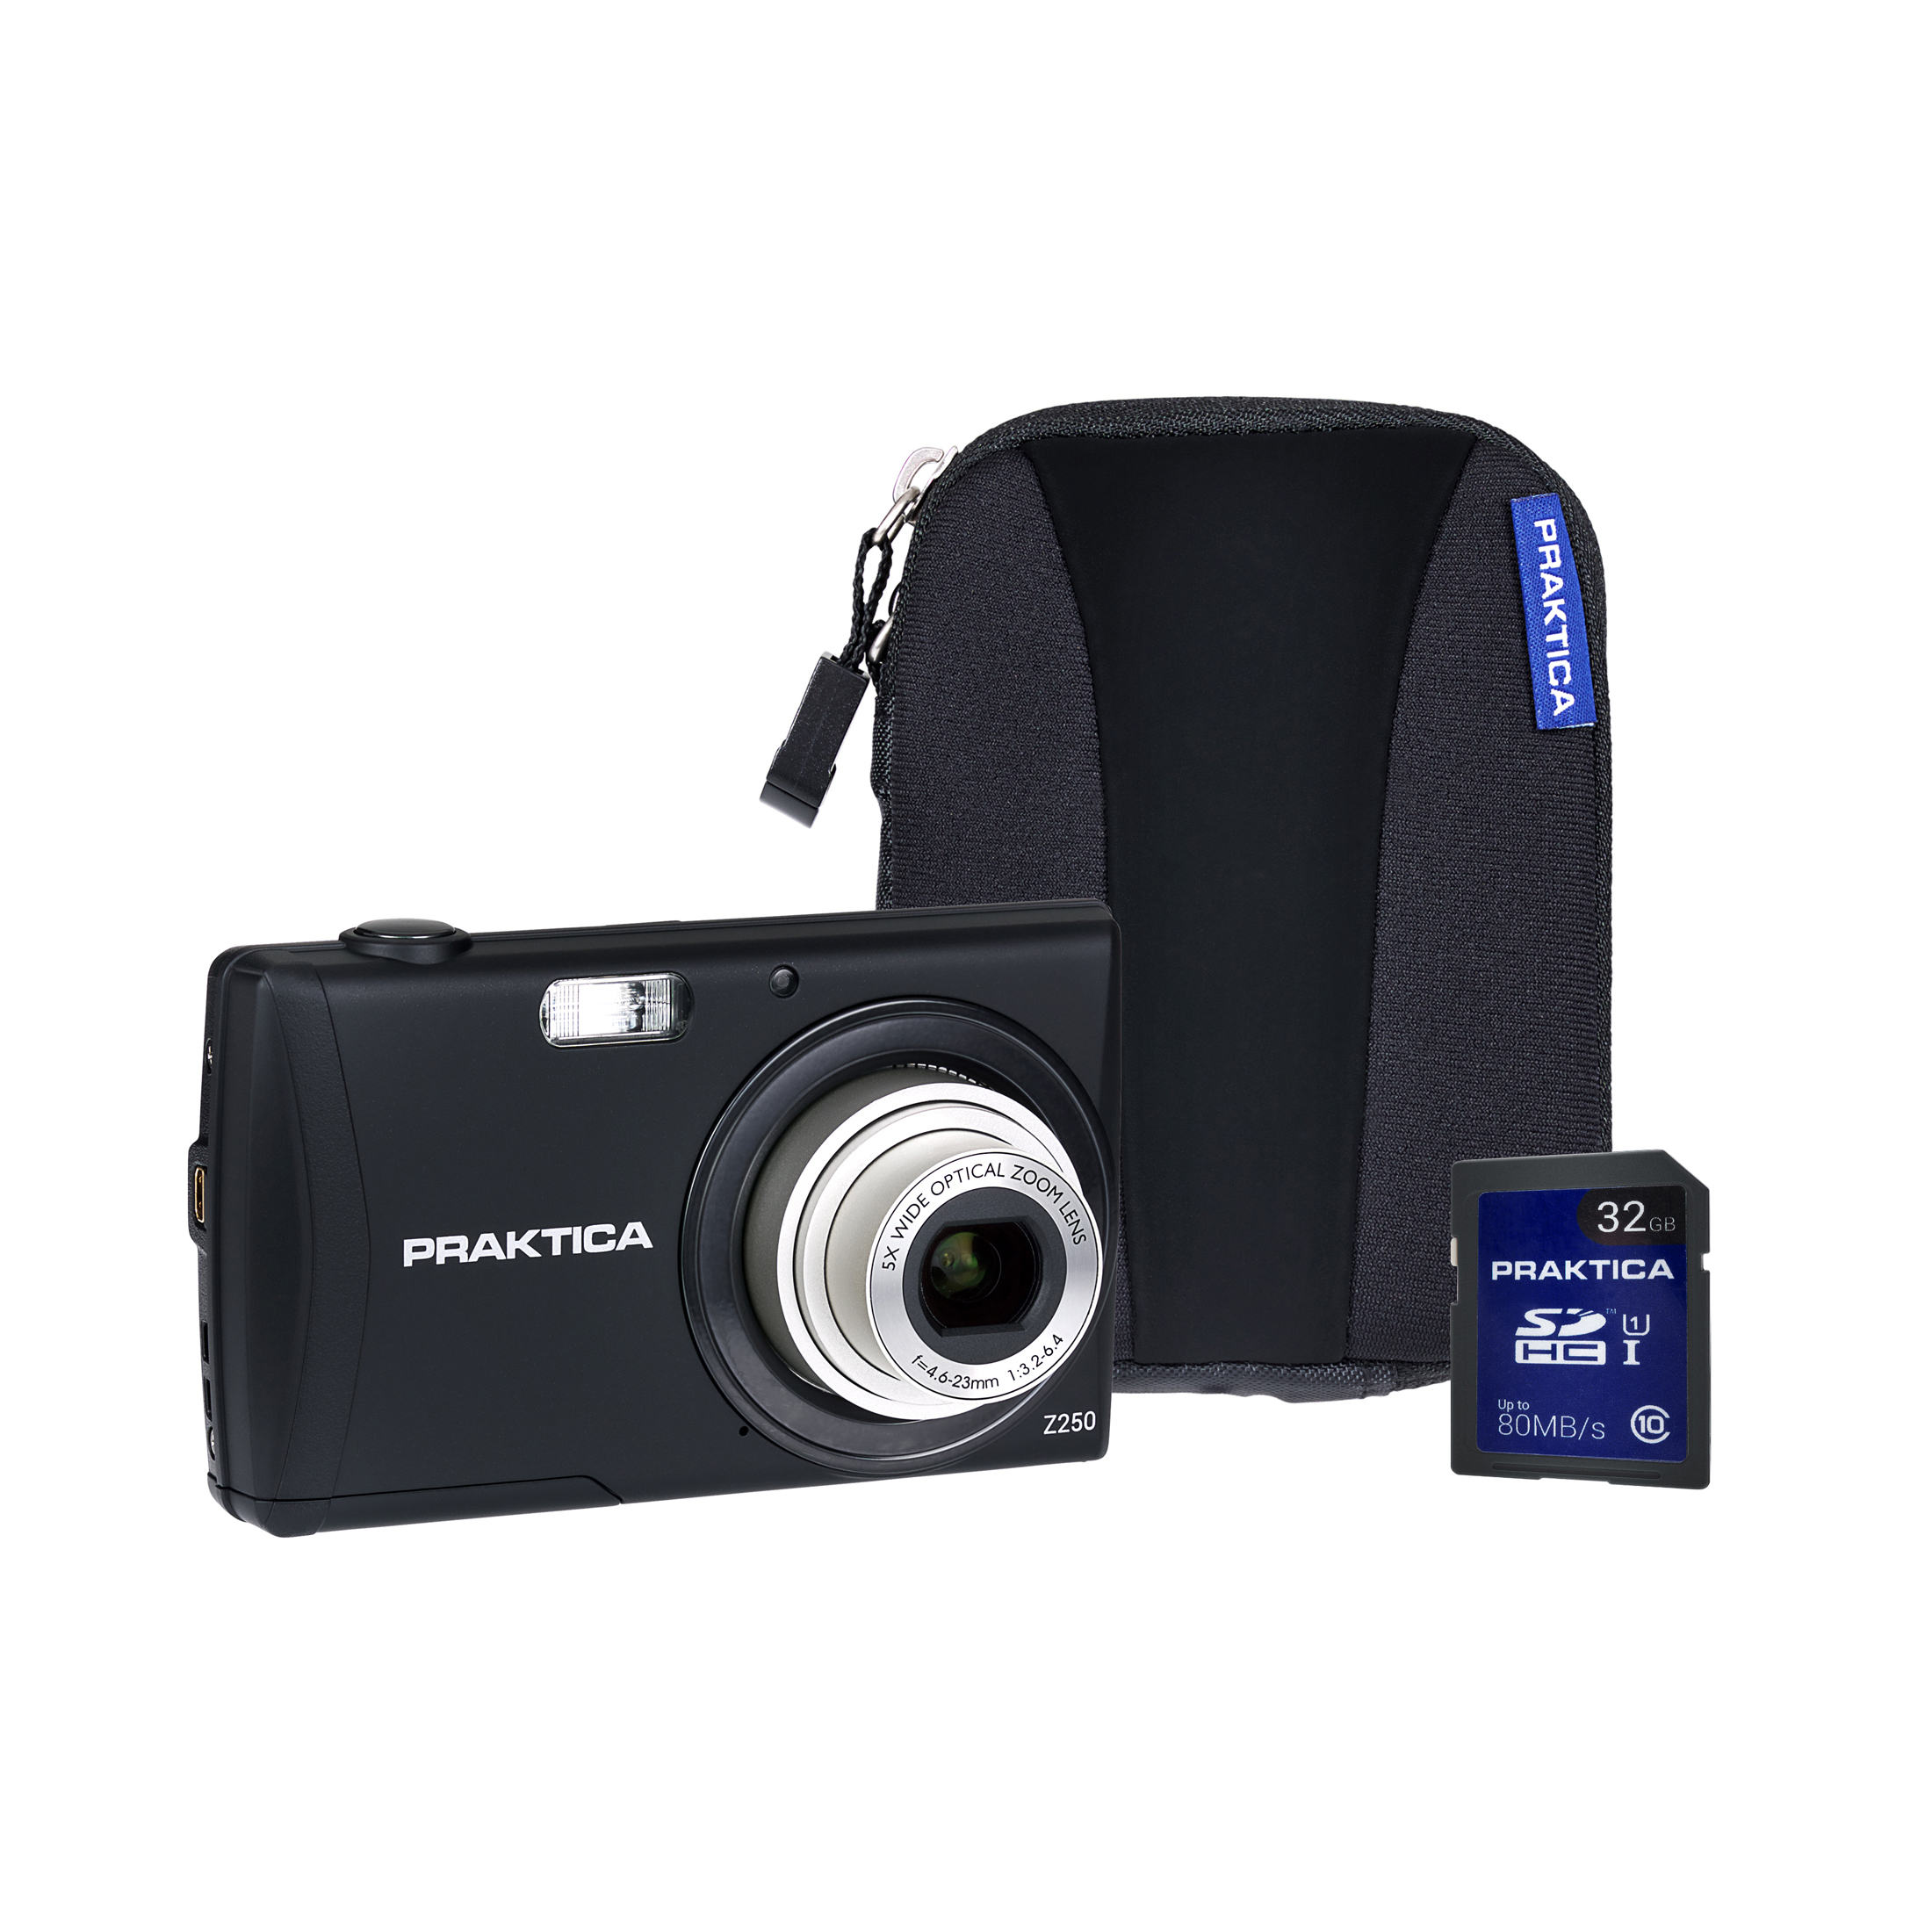 Image for Praktica Z250 Digital Camera Kit 20MP HD Video 5x Optical Zoom Case and 8GB SD card Black Ref PRA111